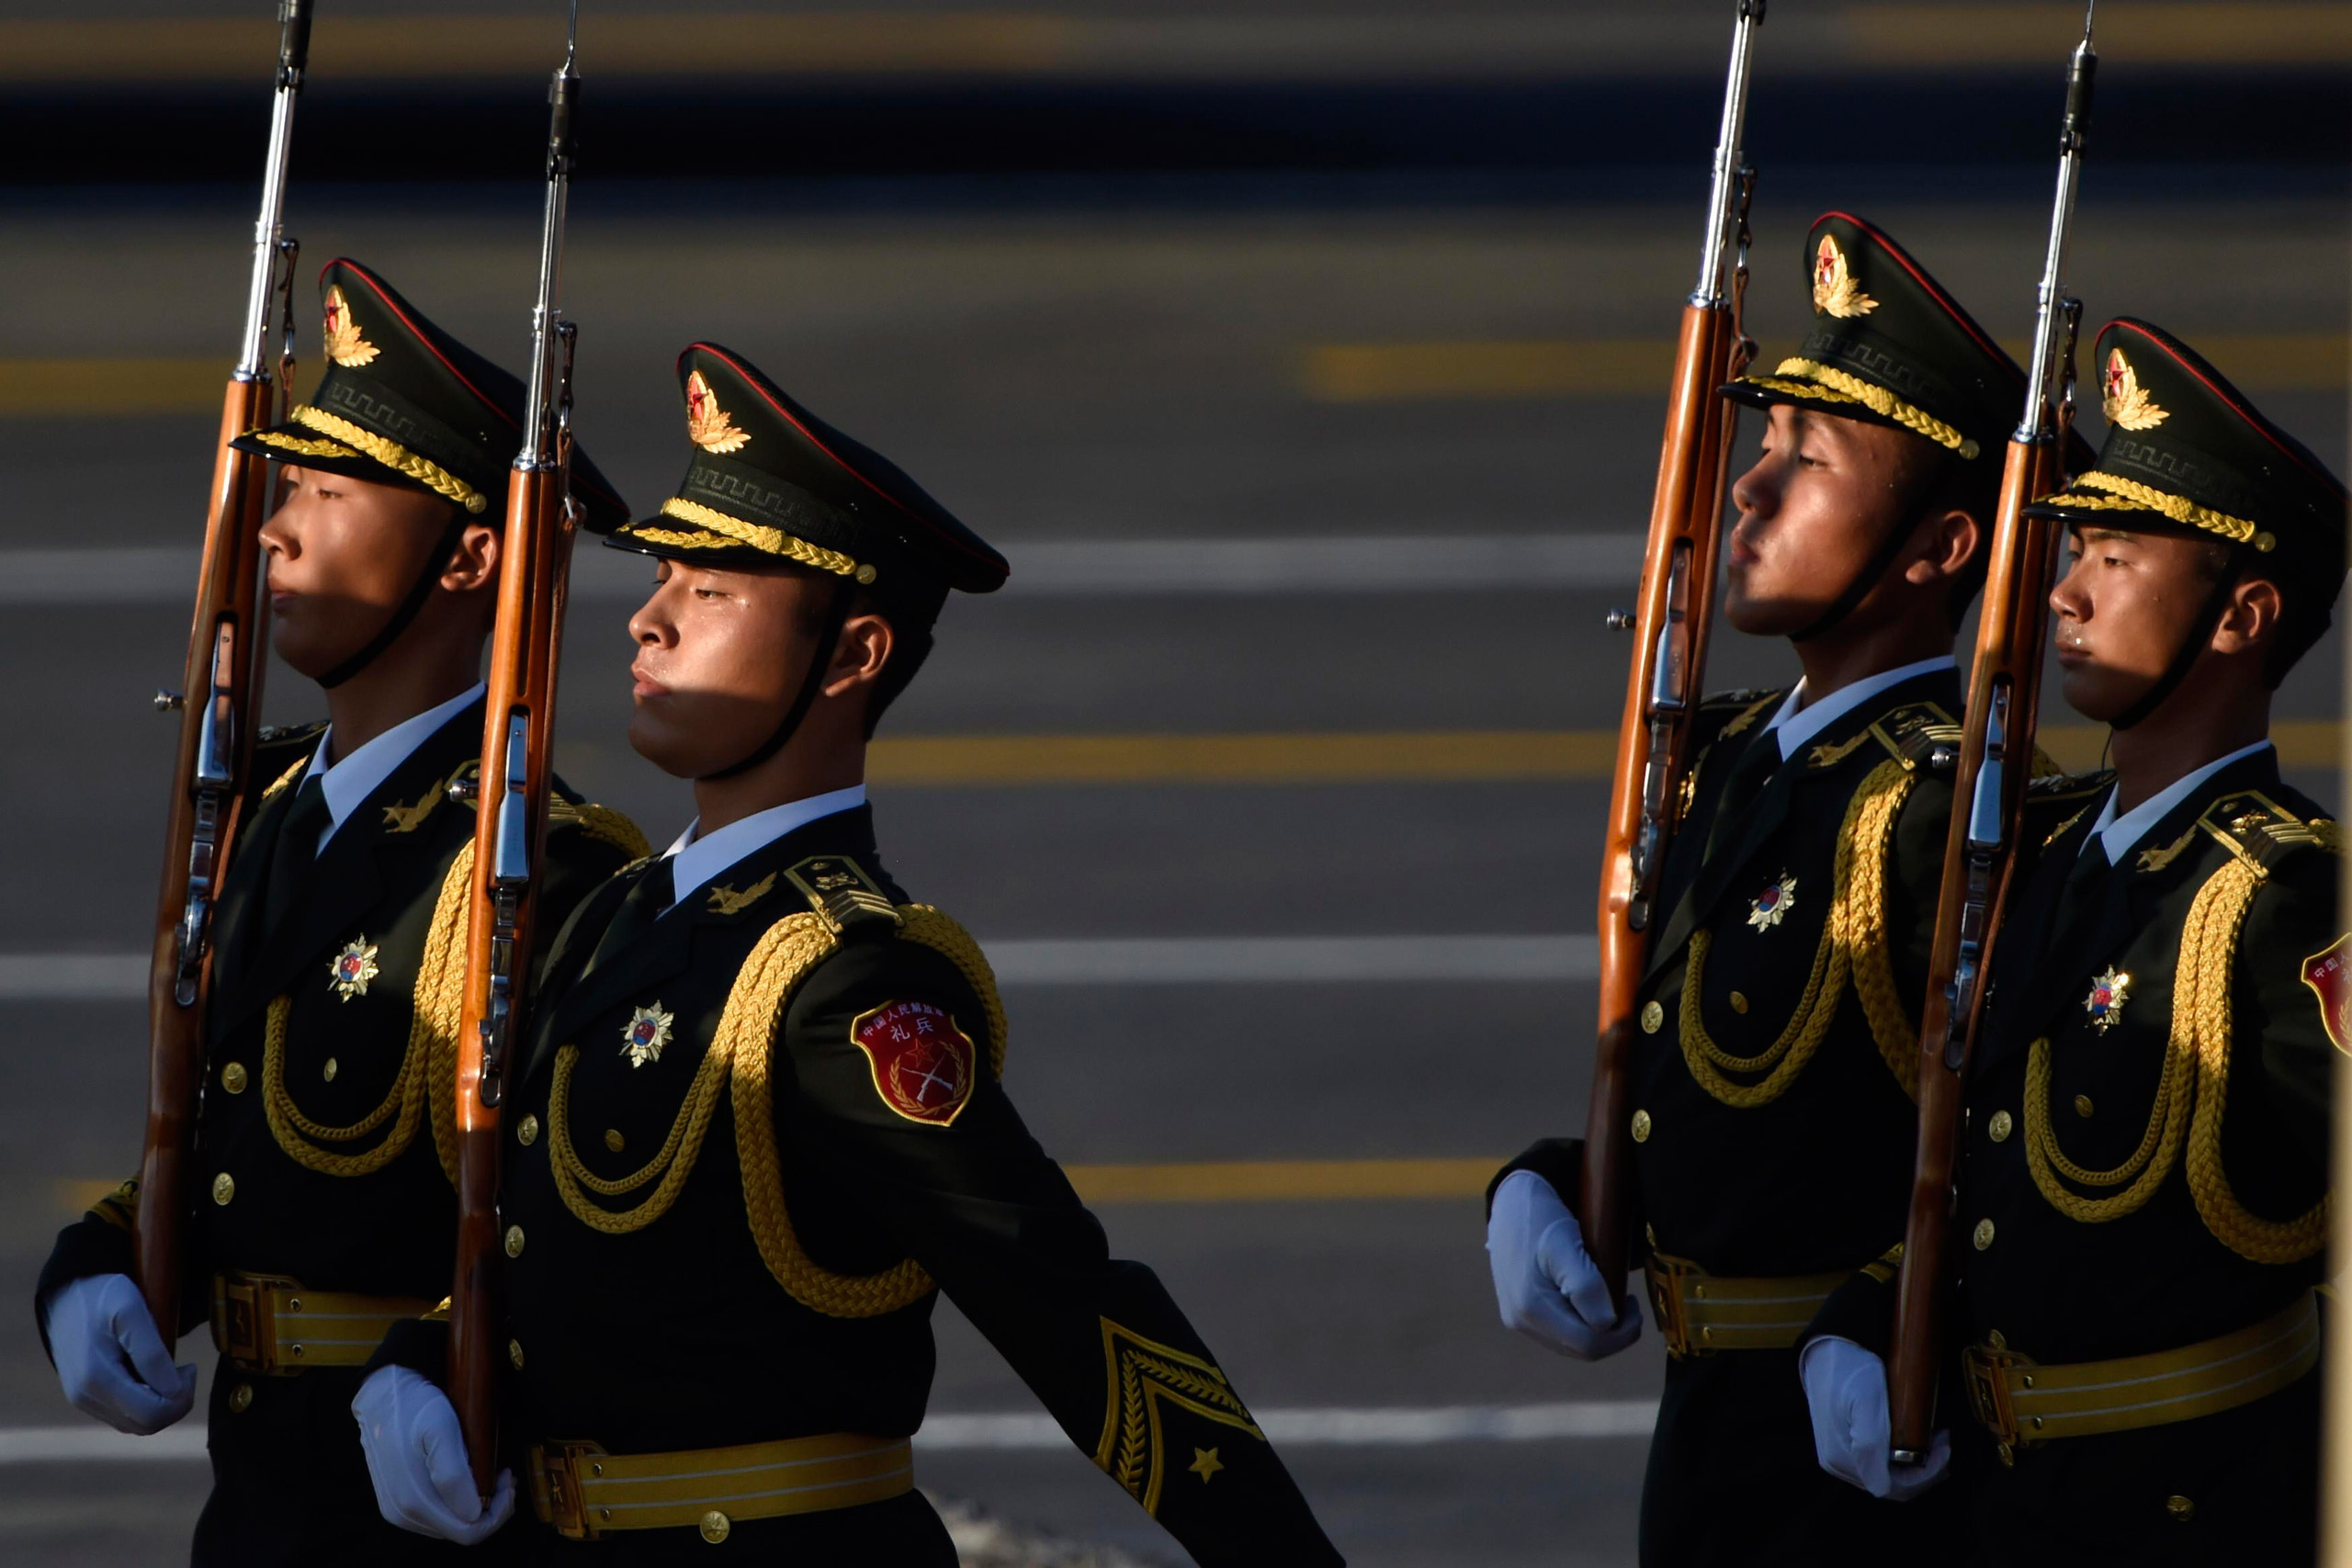 Guards of honor walk past Tiananmen Gate during the military parade celebrating the 70th anniversary of the end of World War II in Beijing, on Sept. 3, 2015.